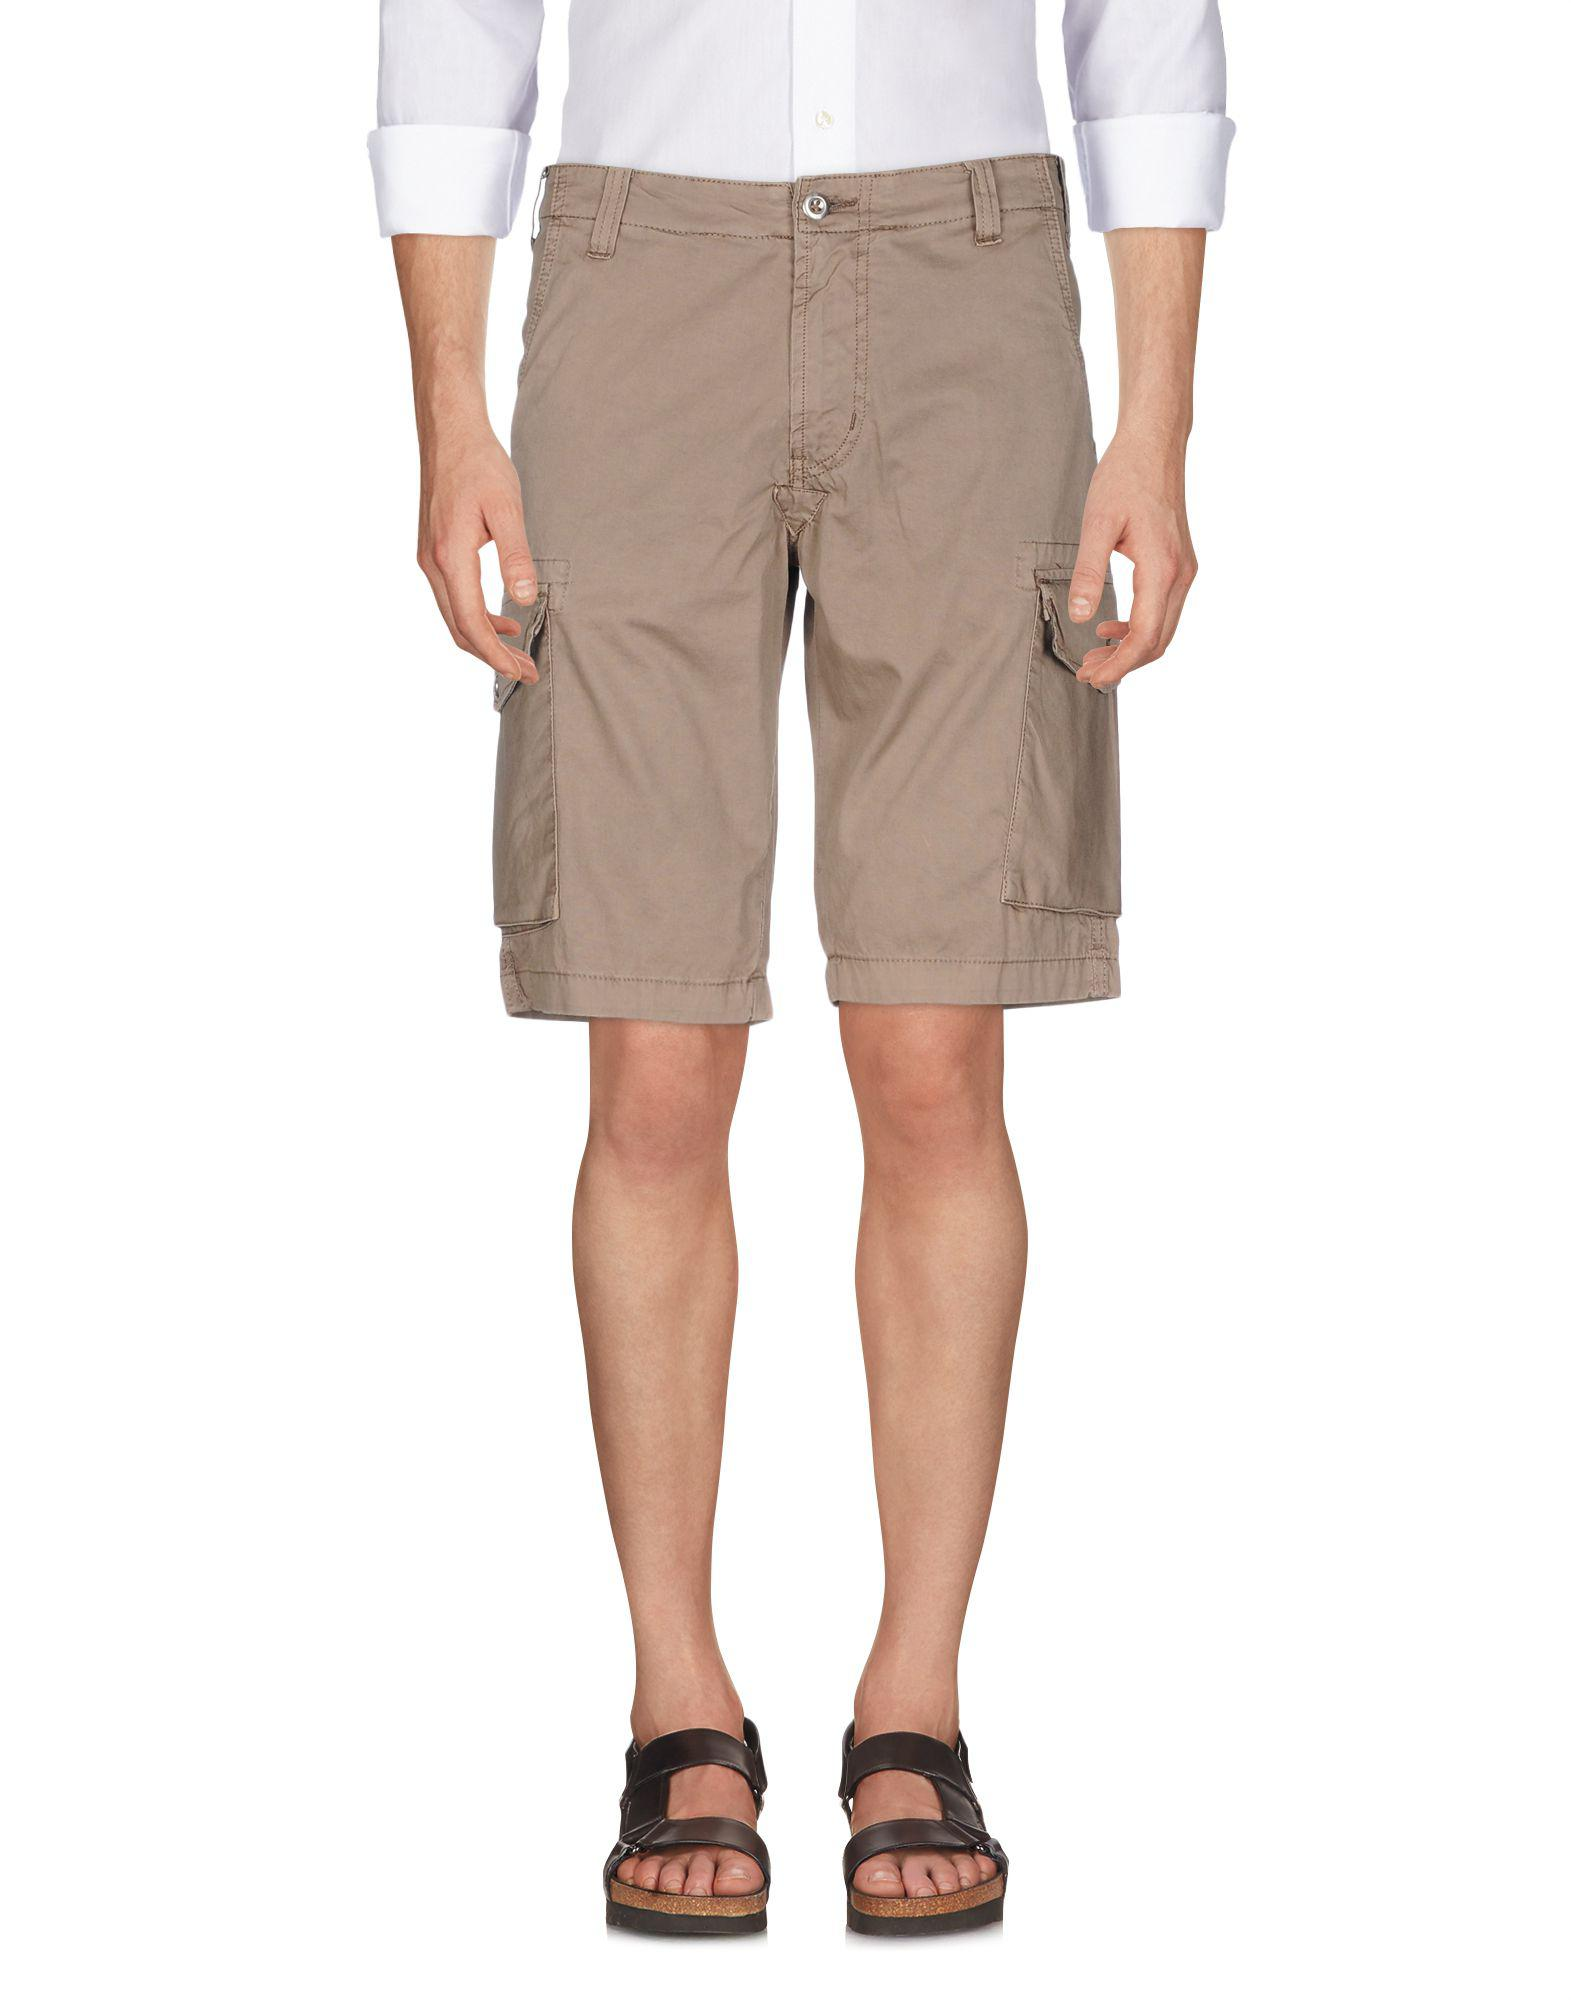 Mens Bermuda Shorts Gaudì Discount Largest Supplier Cheap Browse Quality From China Cheap With Mastercard Sale Online hNXbv